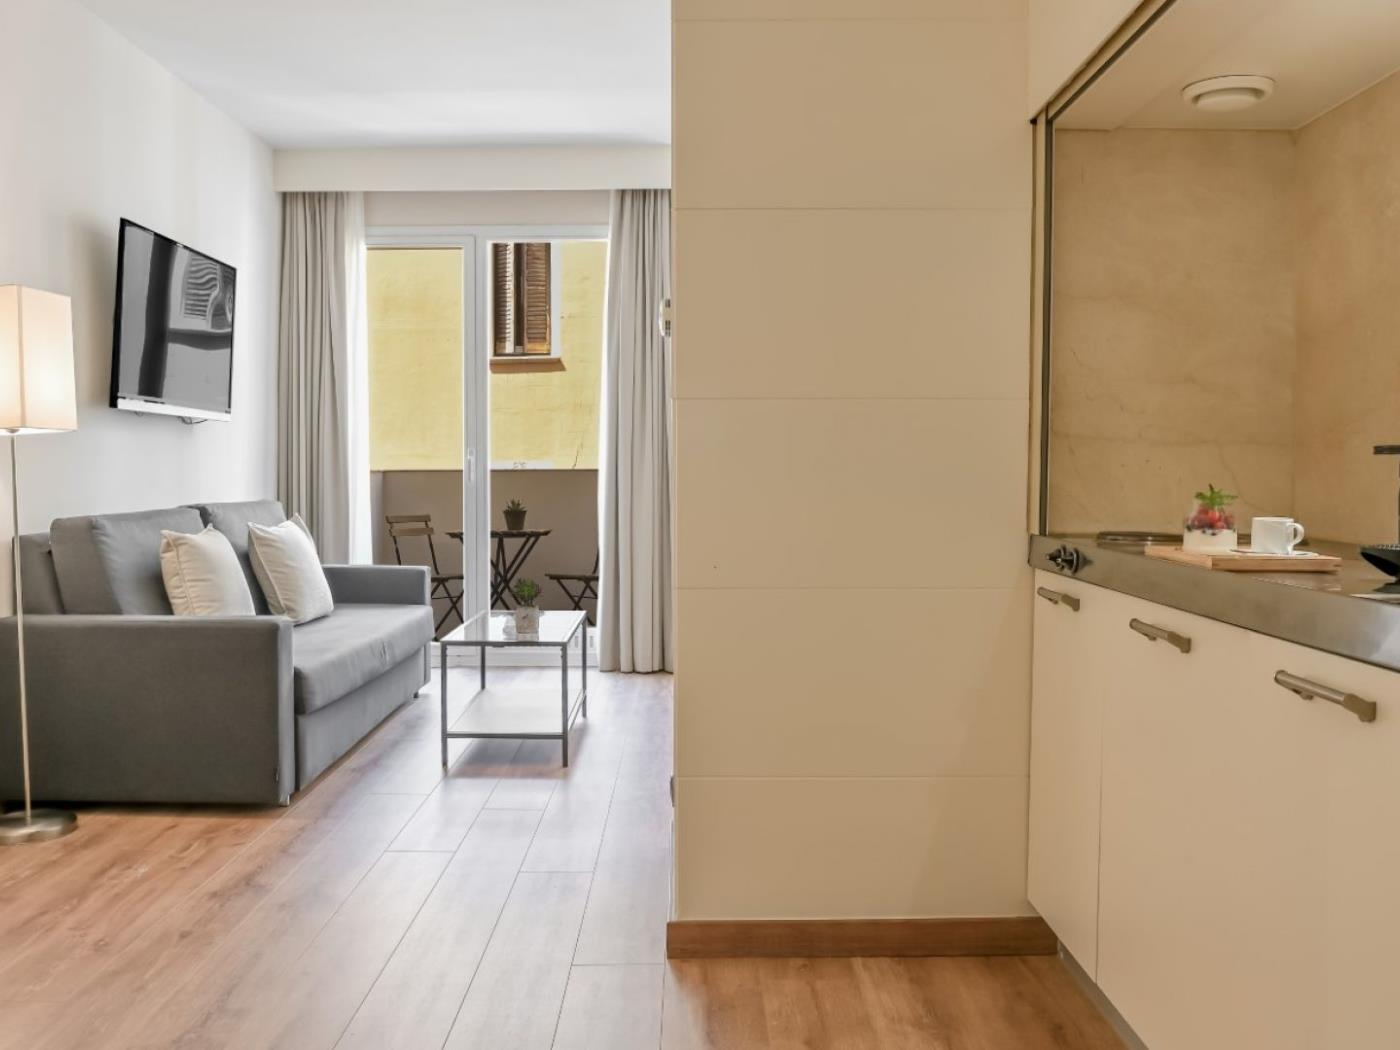 Beautiful studio apartment in Gràcia for long term rentals ideal for couples - My Space Barcelona Apartments